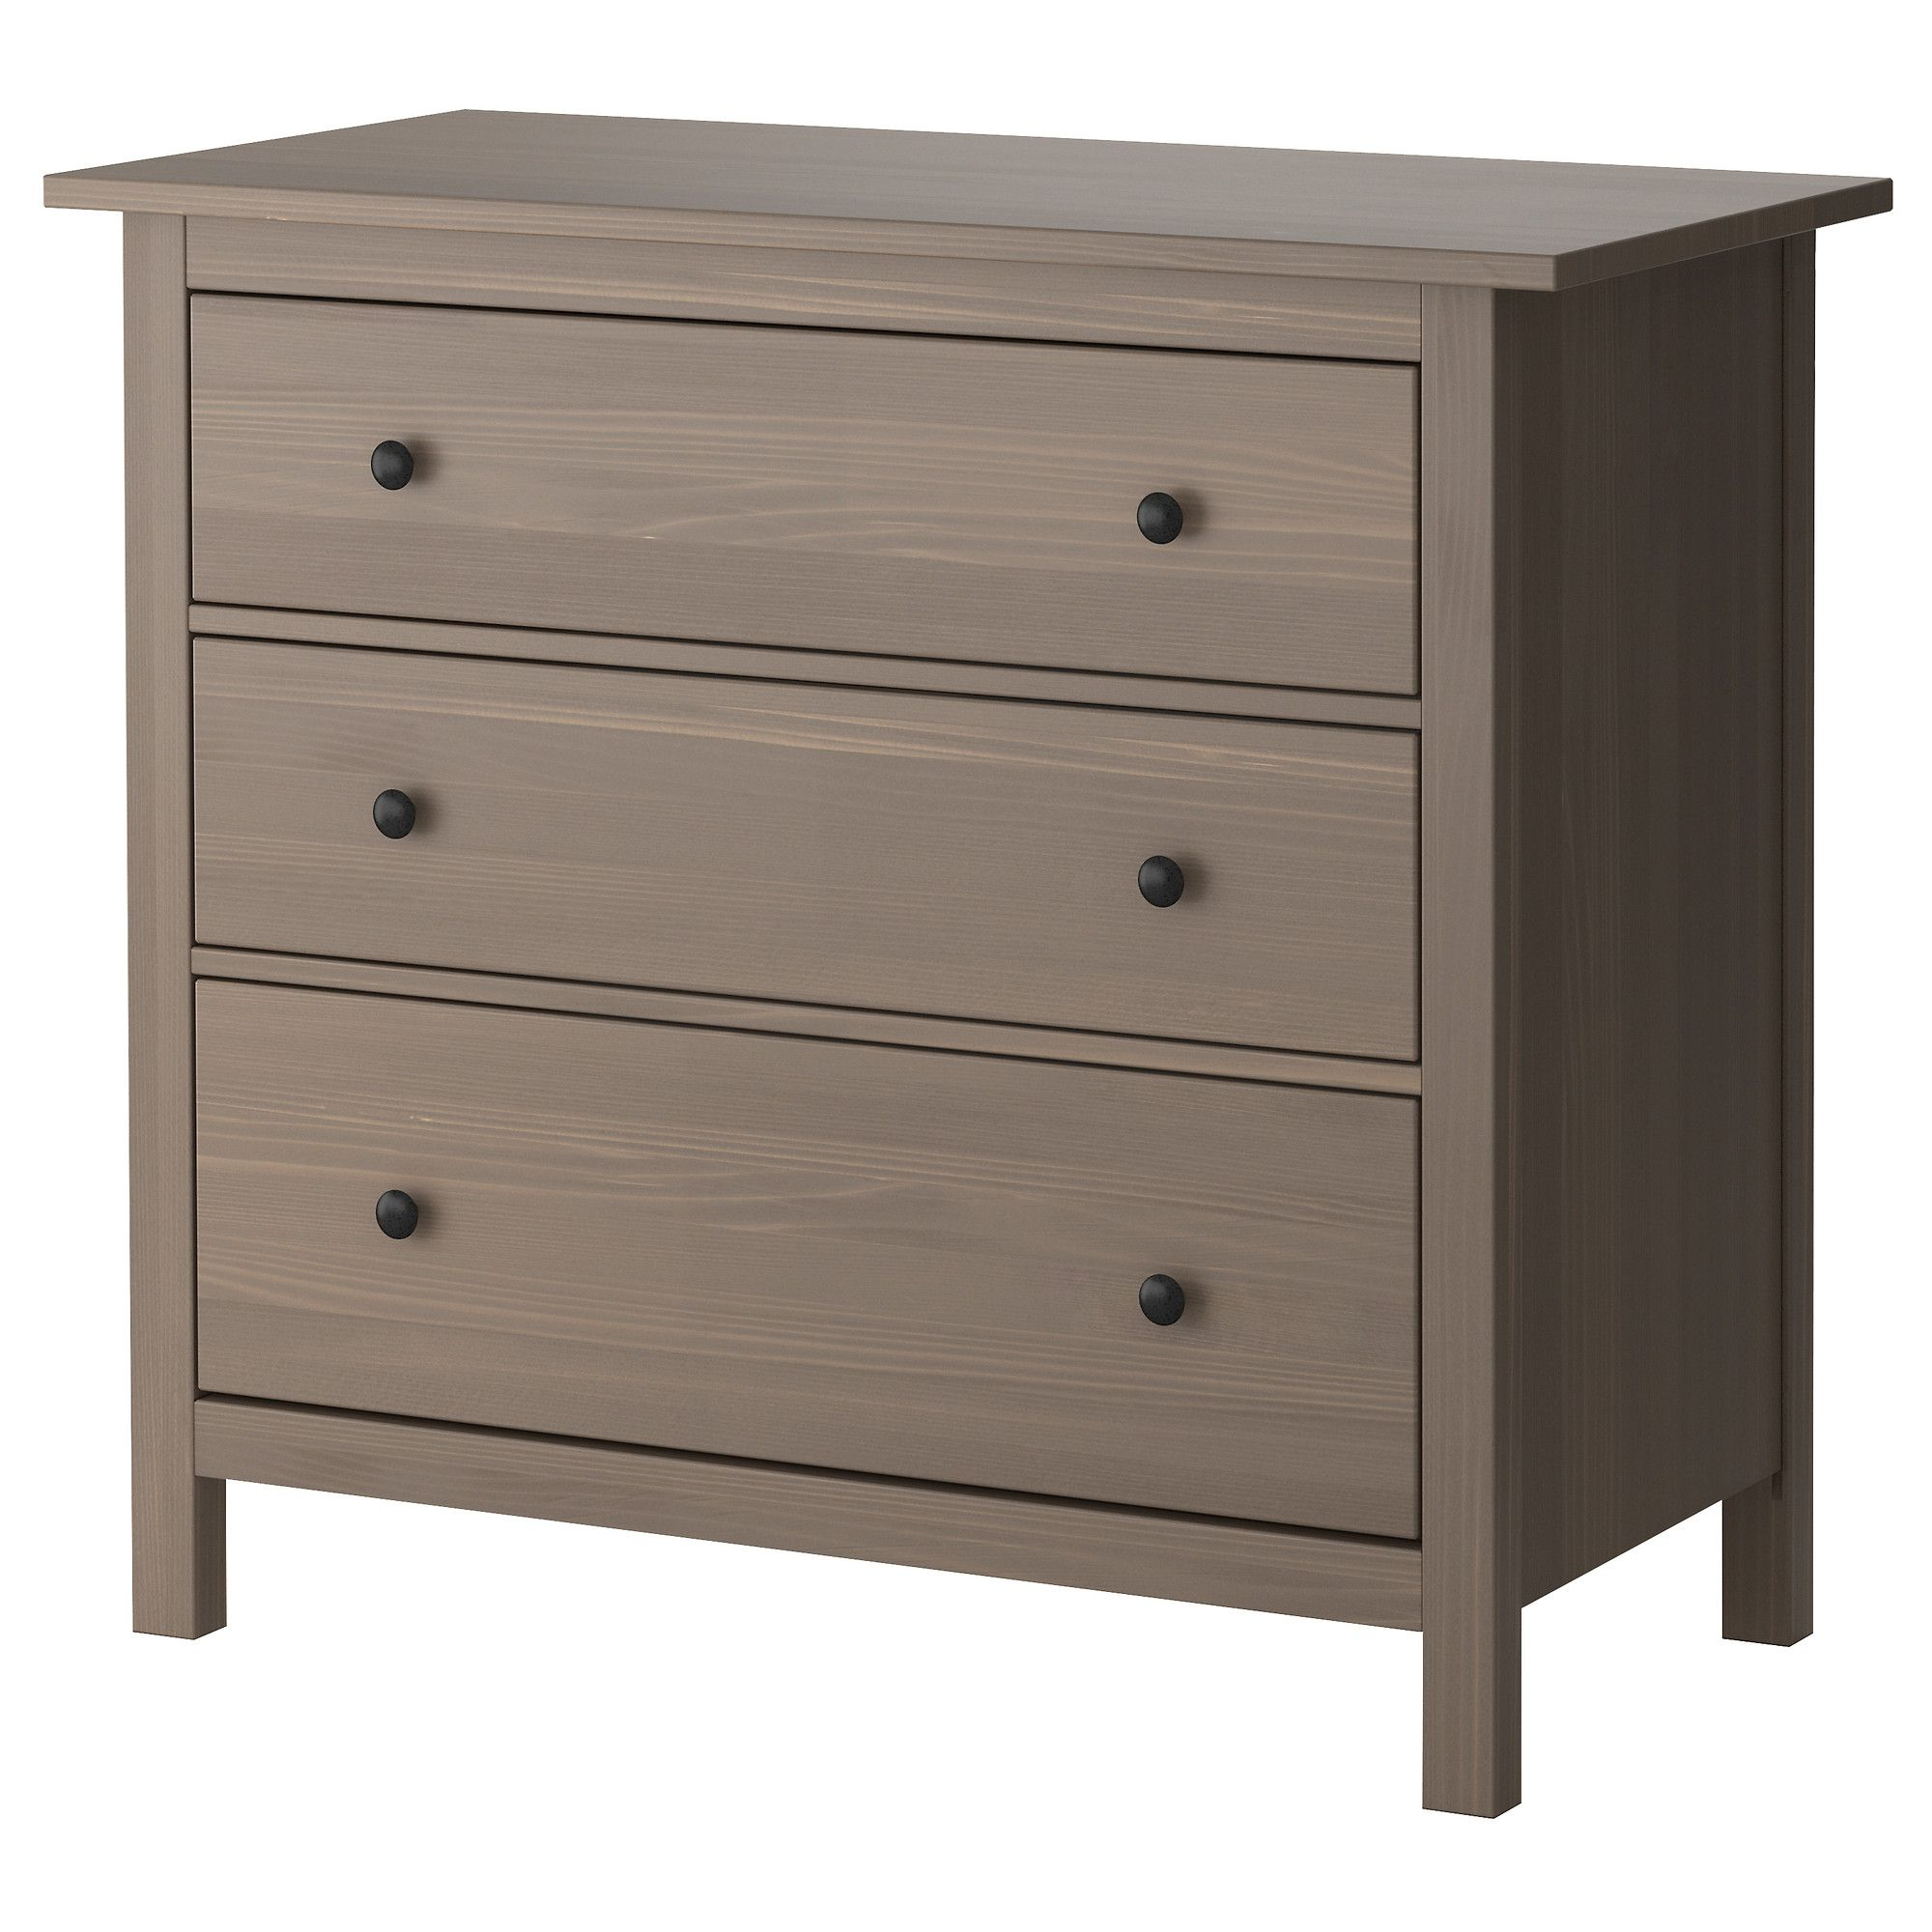 hemnes 3 drawer chest ikea width 42 1 2 depth 19 5 8. Black Bedroom Furniture Sets. Home Design Ideas